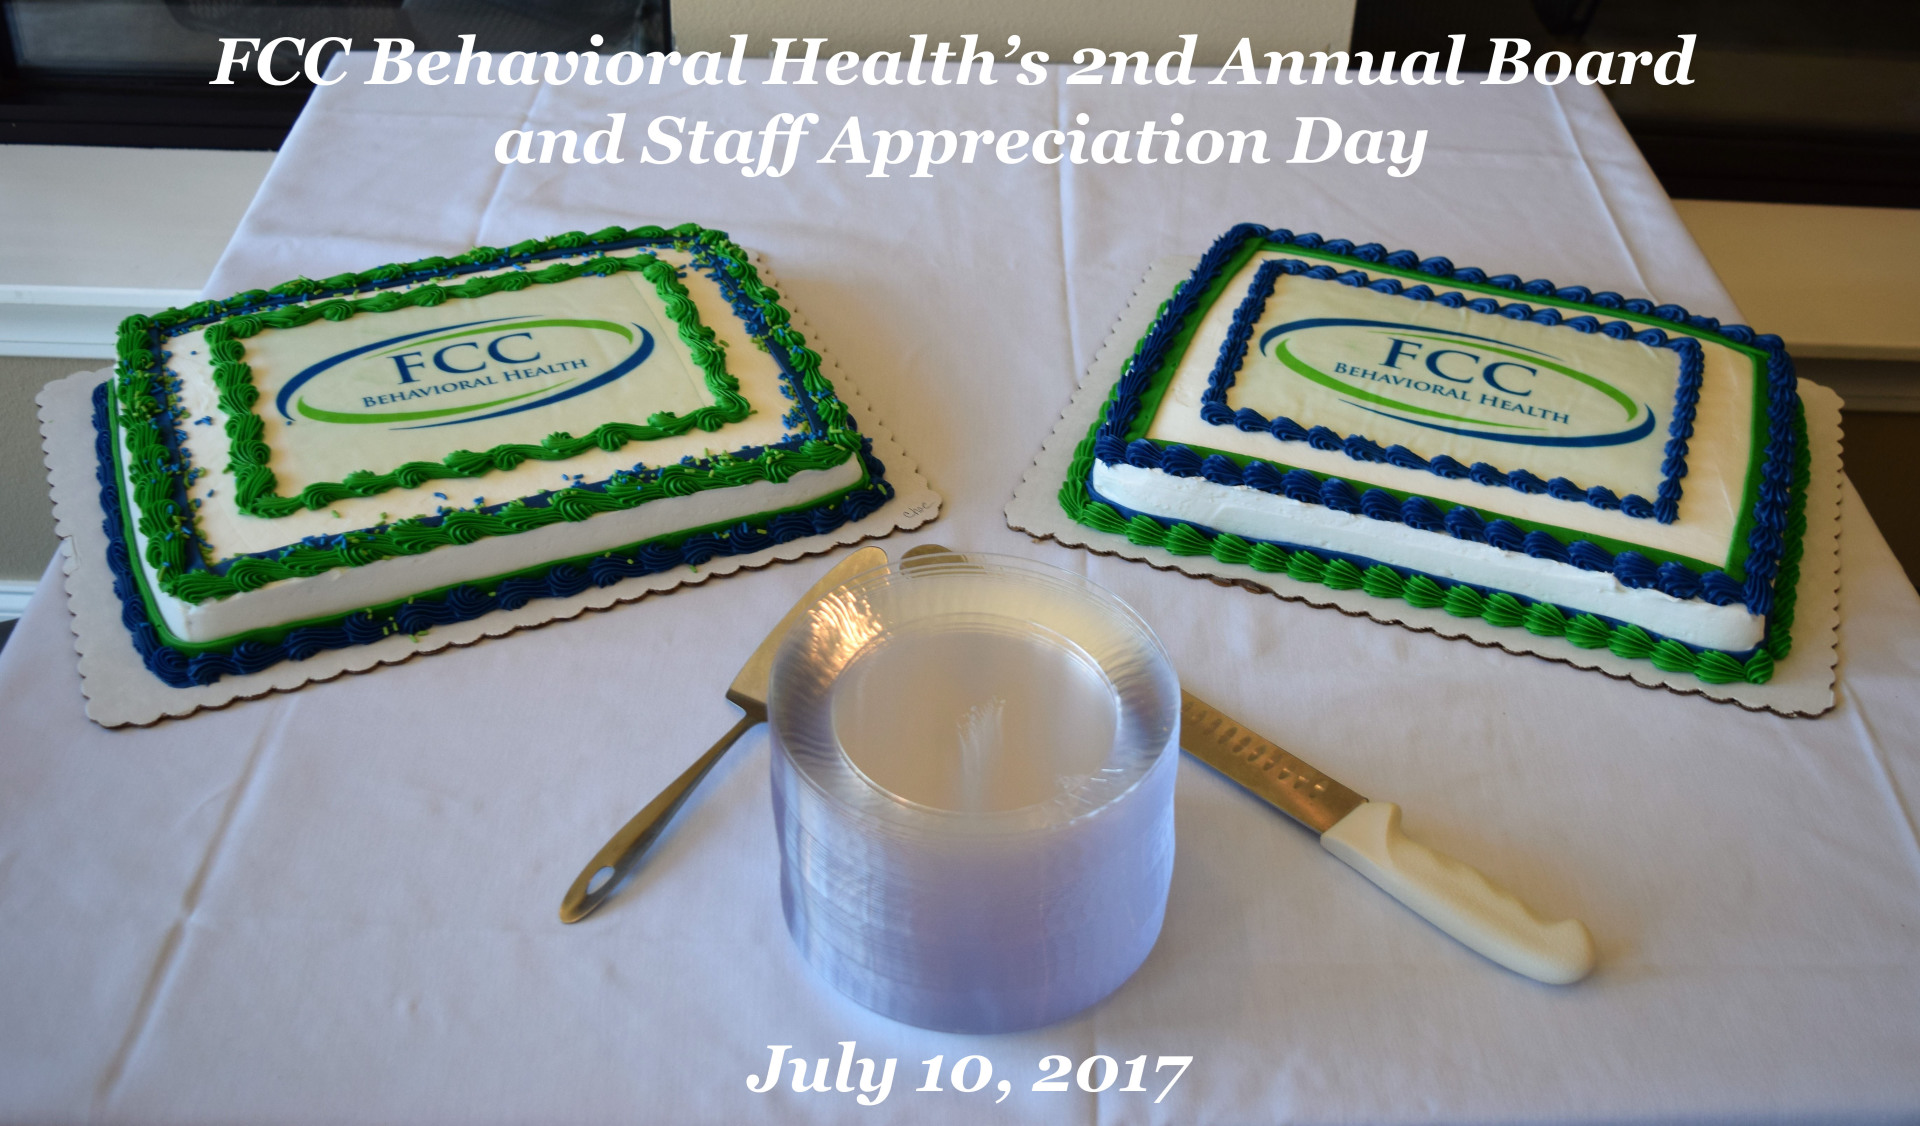 FCC Behavioral Health's 2nd Annual Board and Staff Appreciation Day